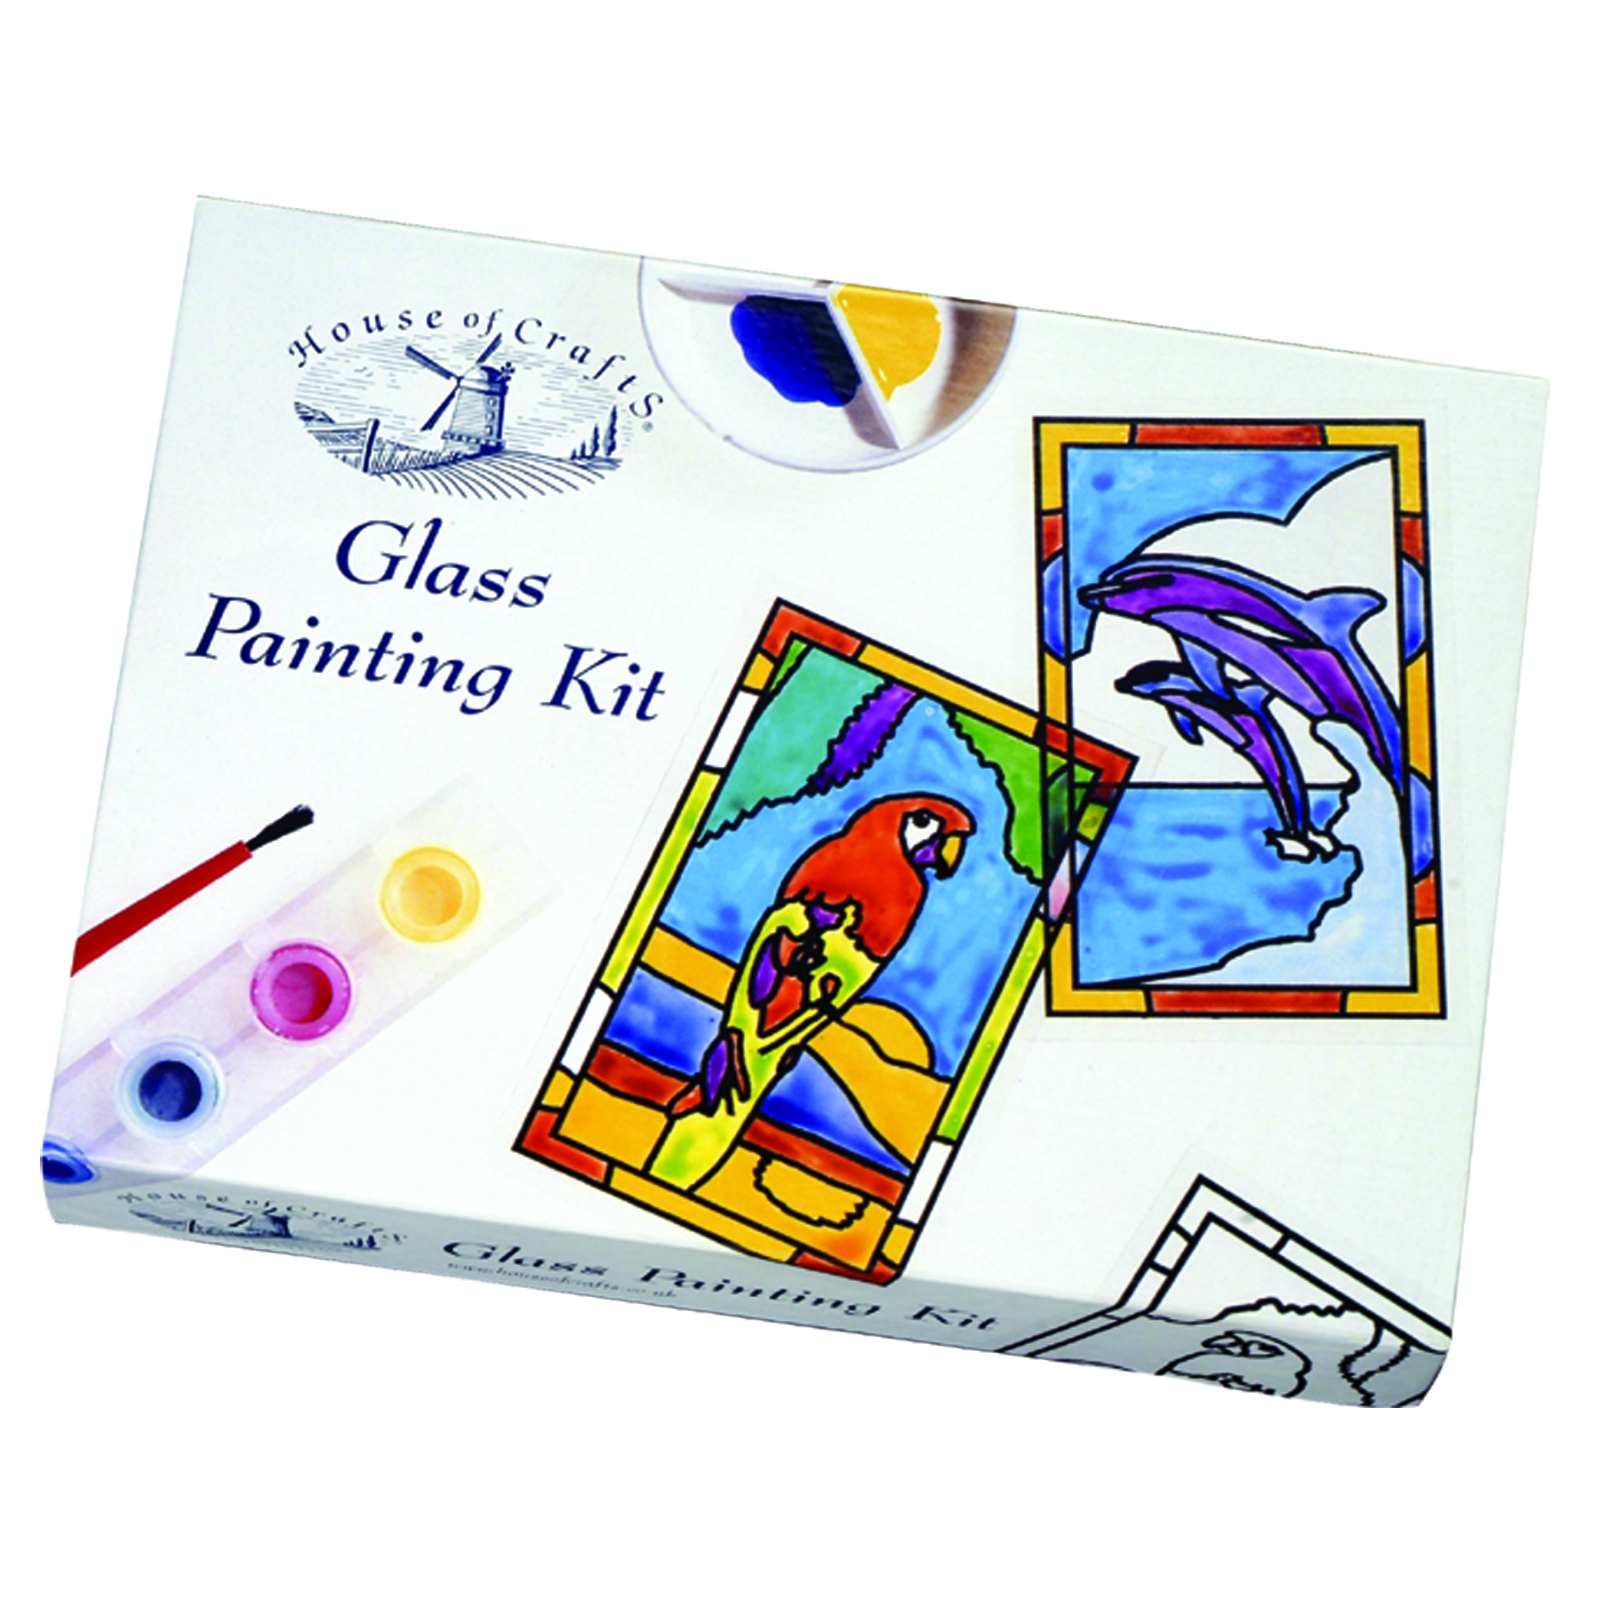 HOUSE OF CRAFTS -GLASS PAINTING KIT